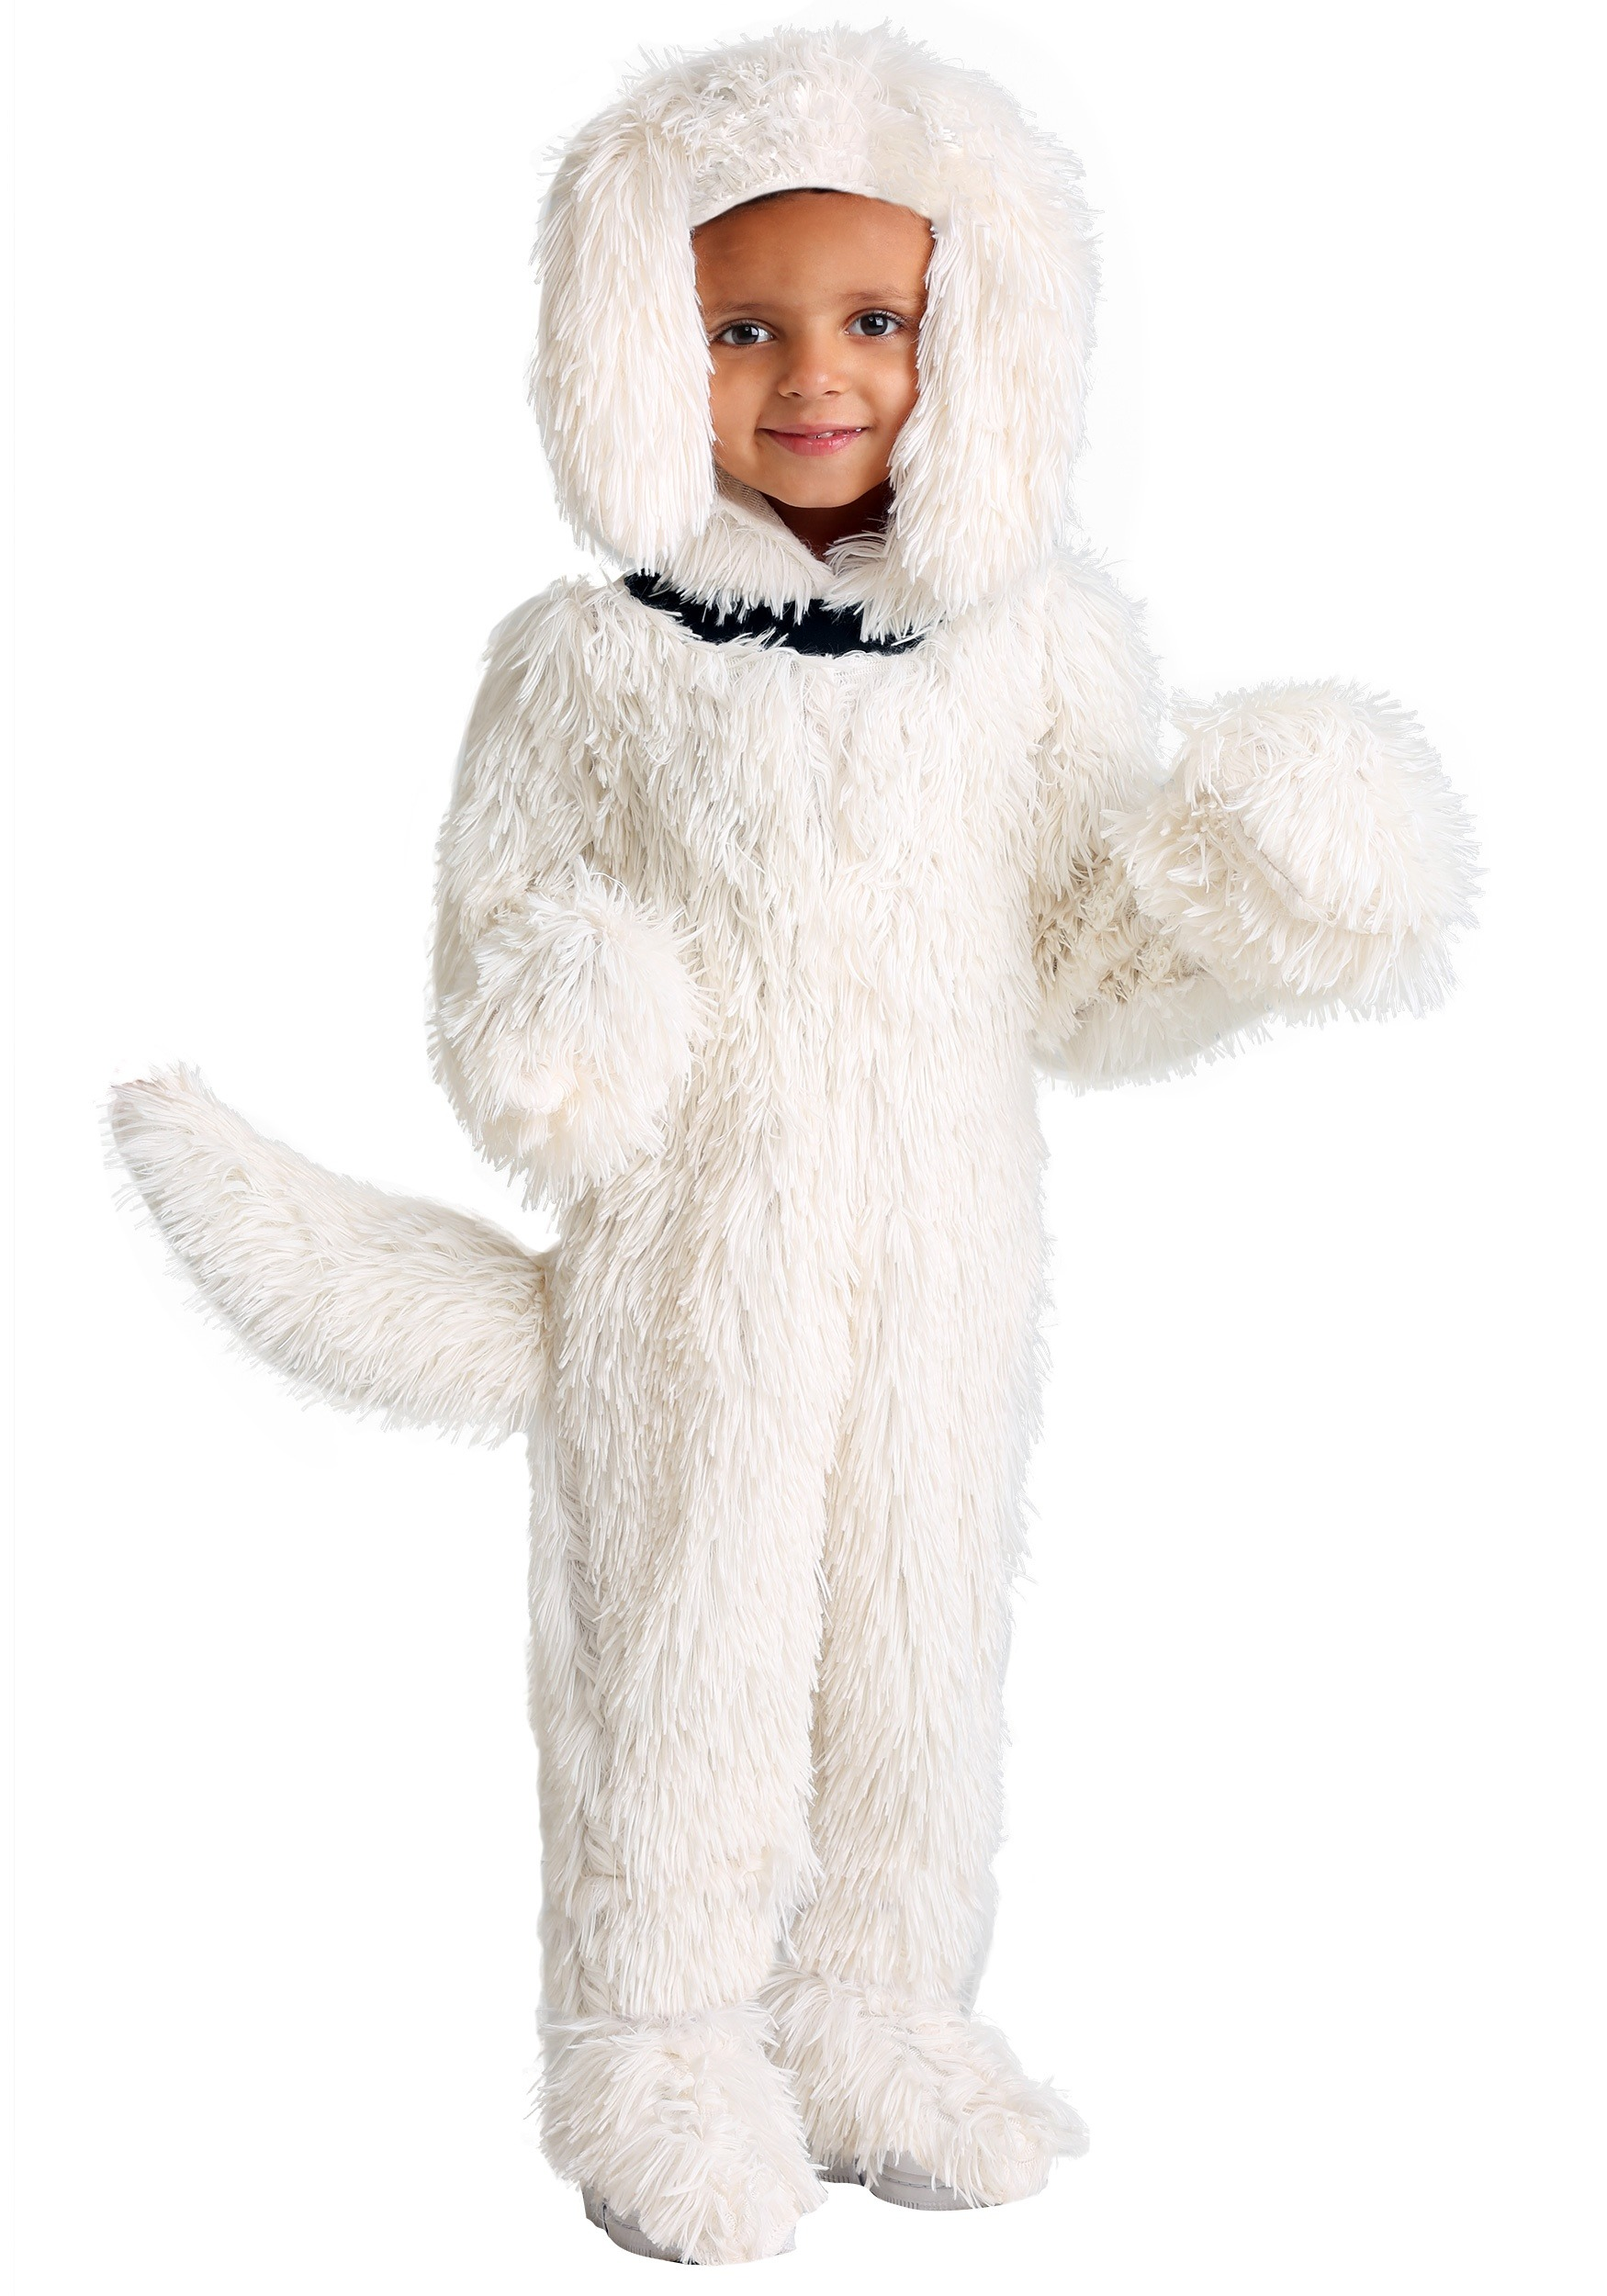 Shaggy Sheep Dog Costume for Toddlers